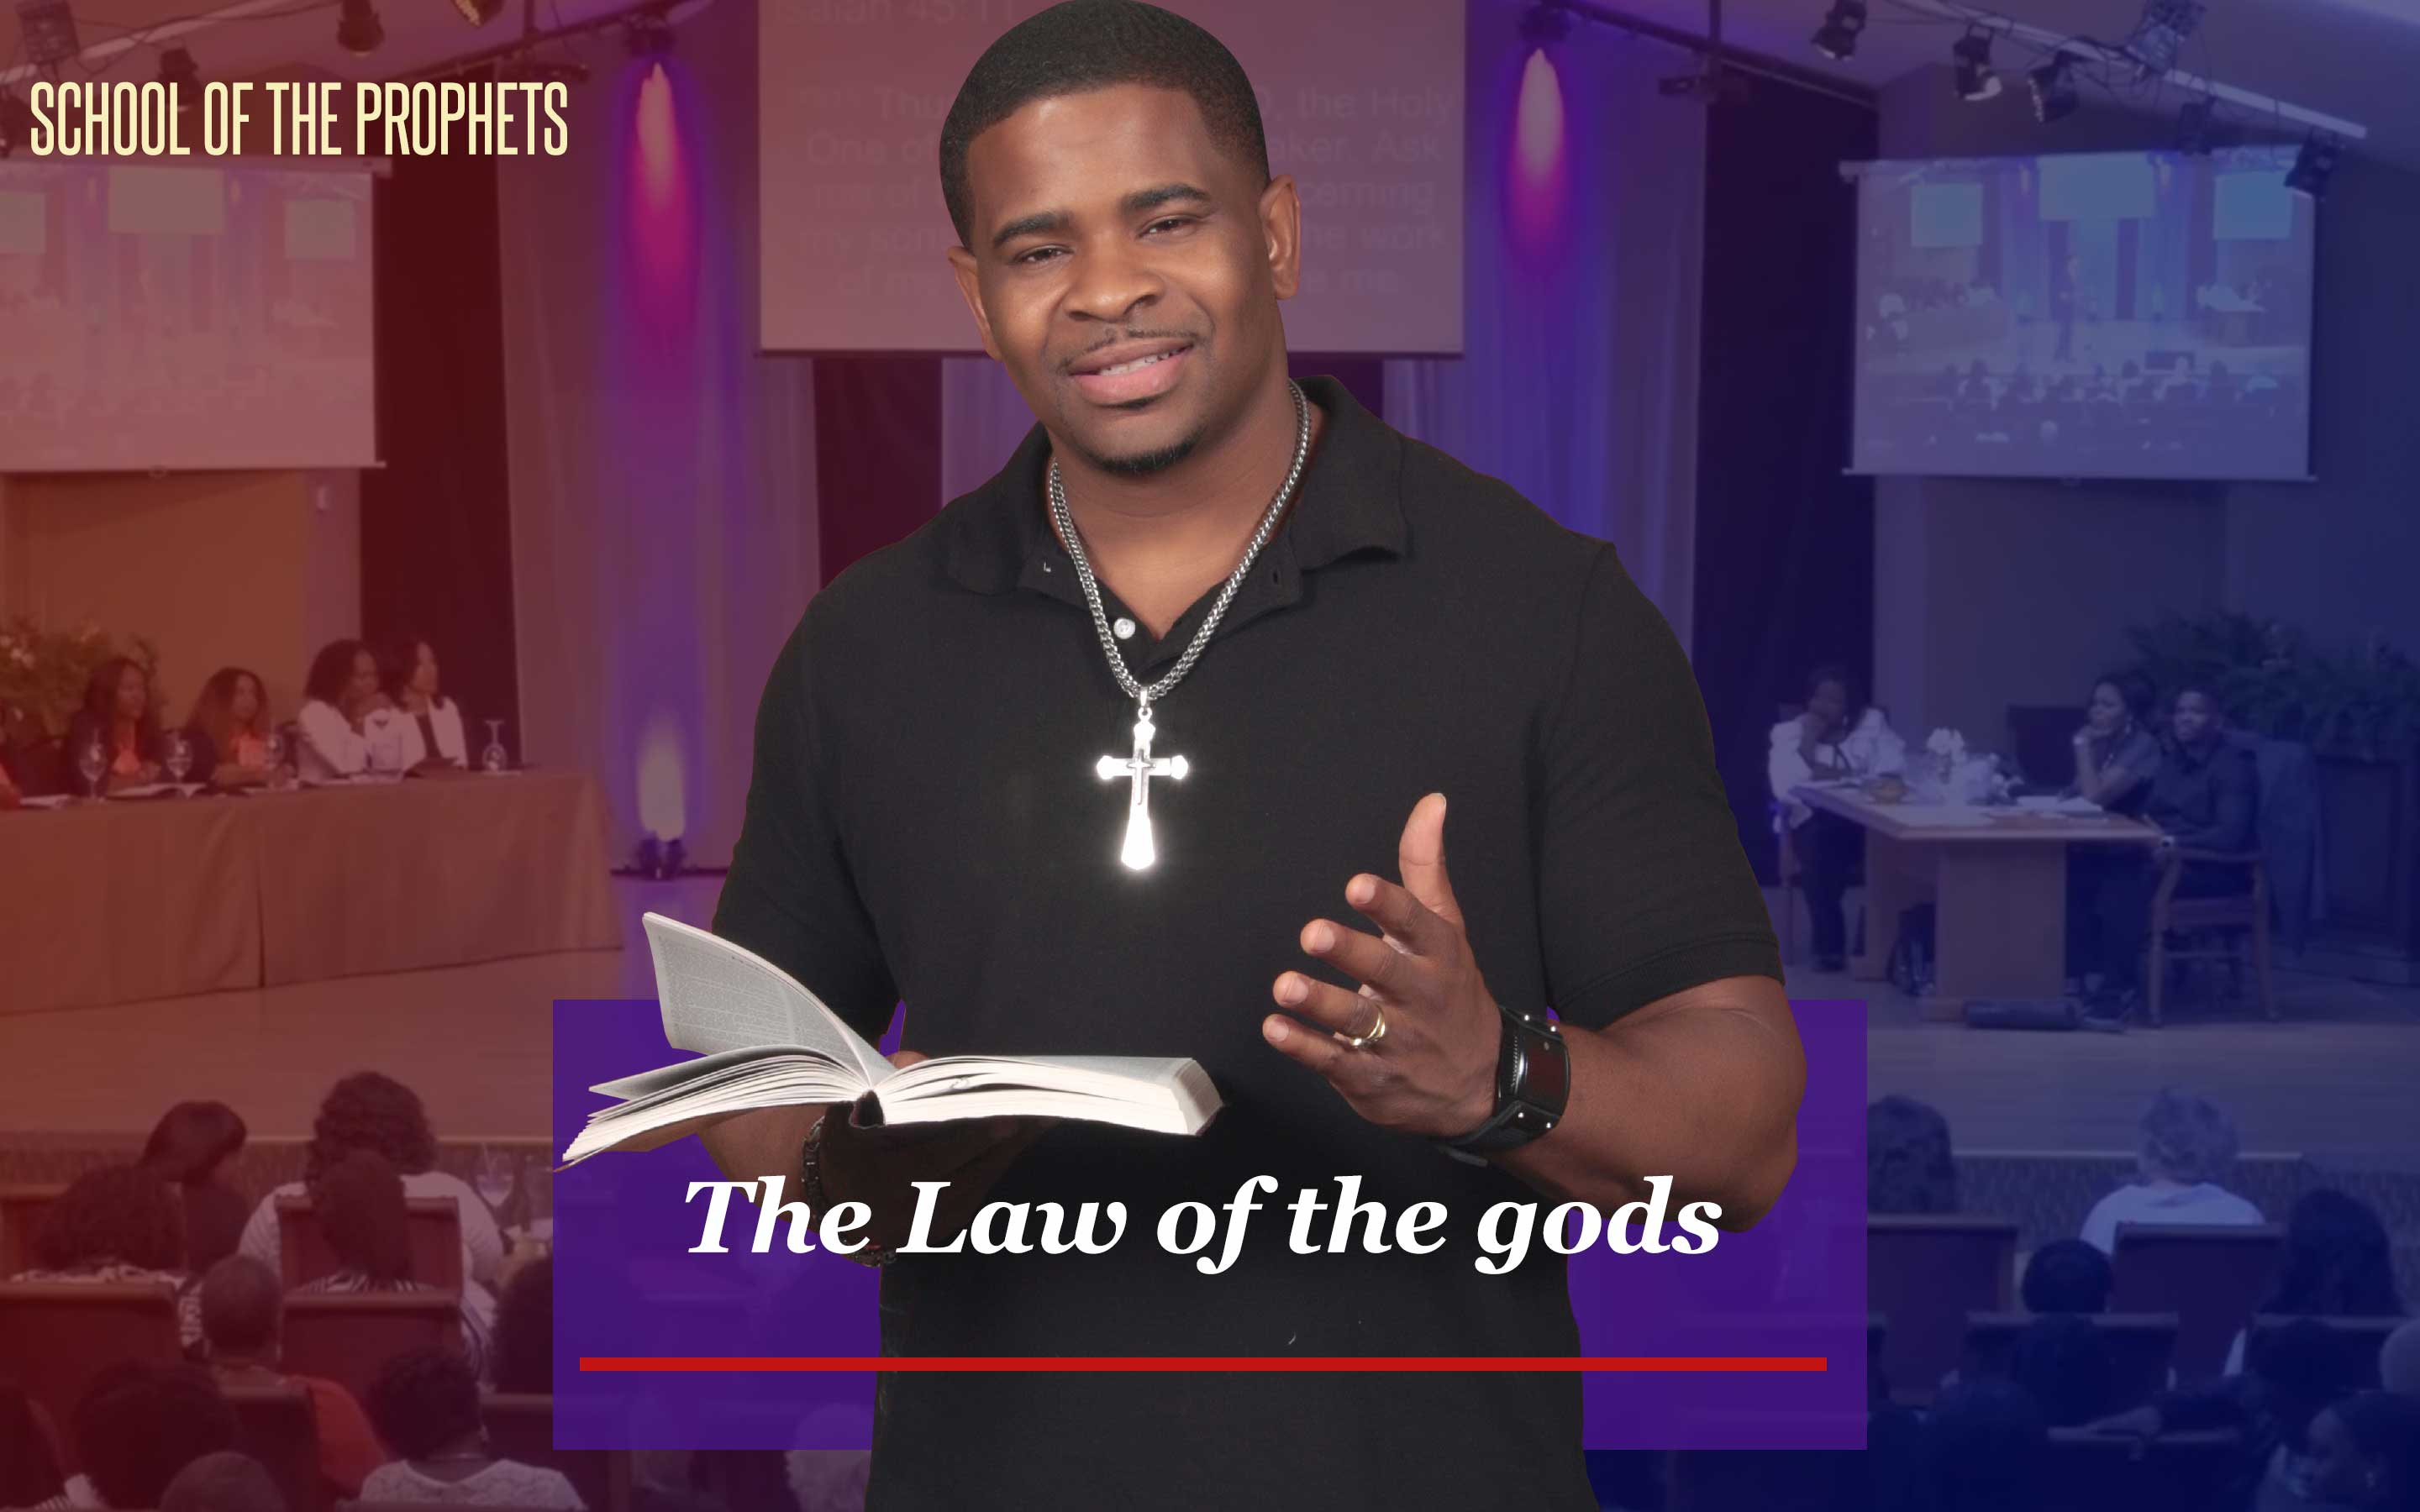 SOP The Law of the gods